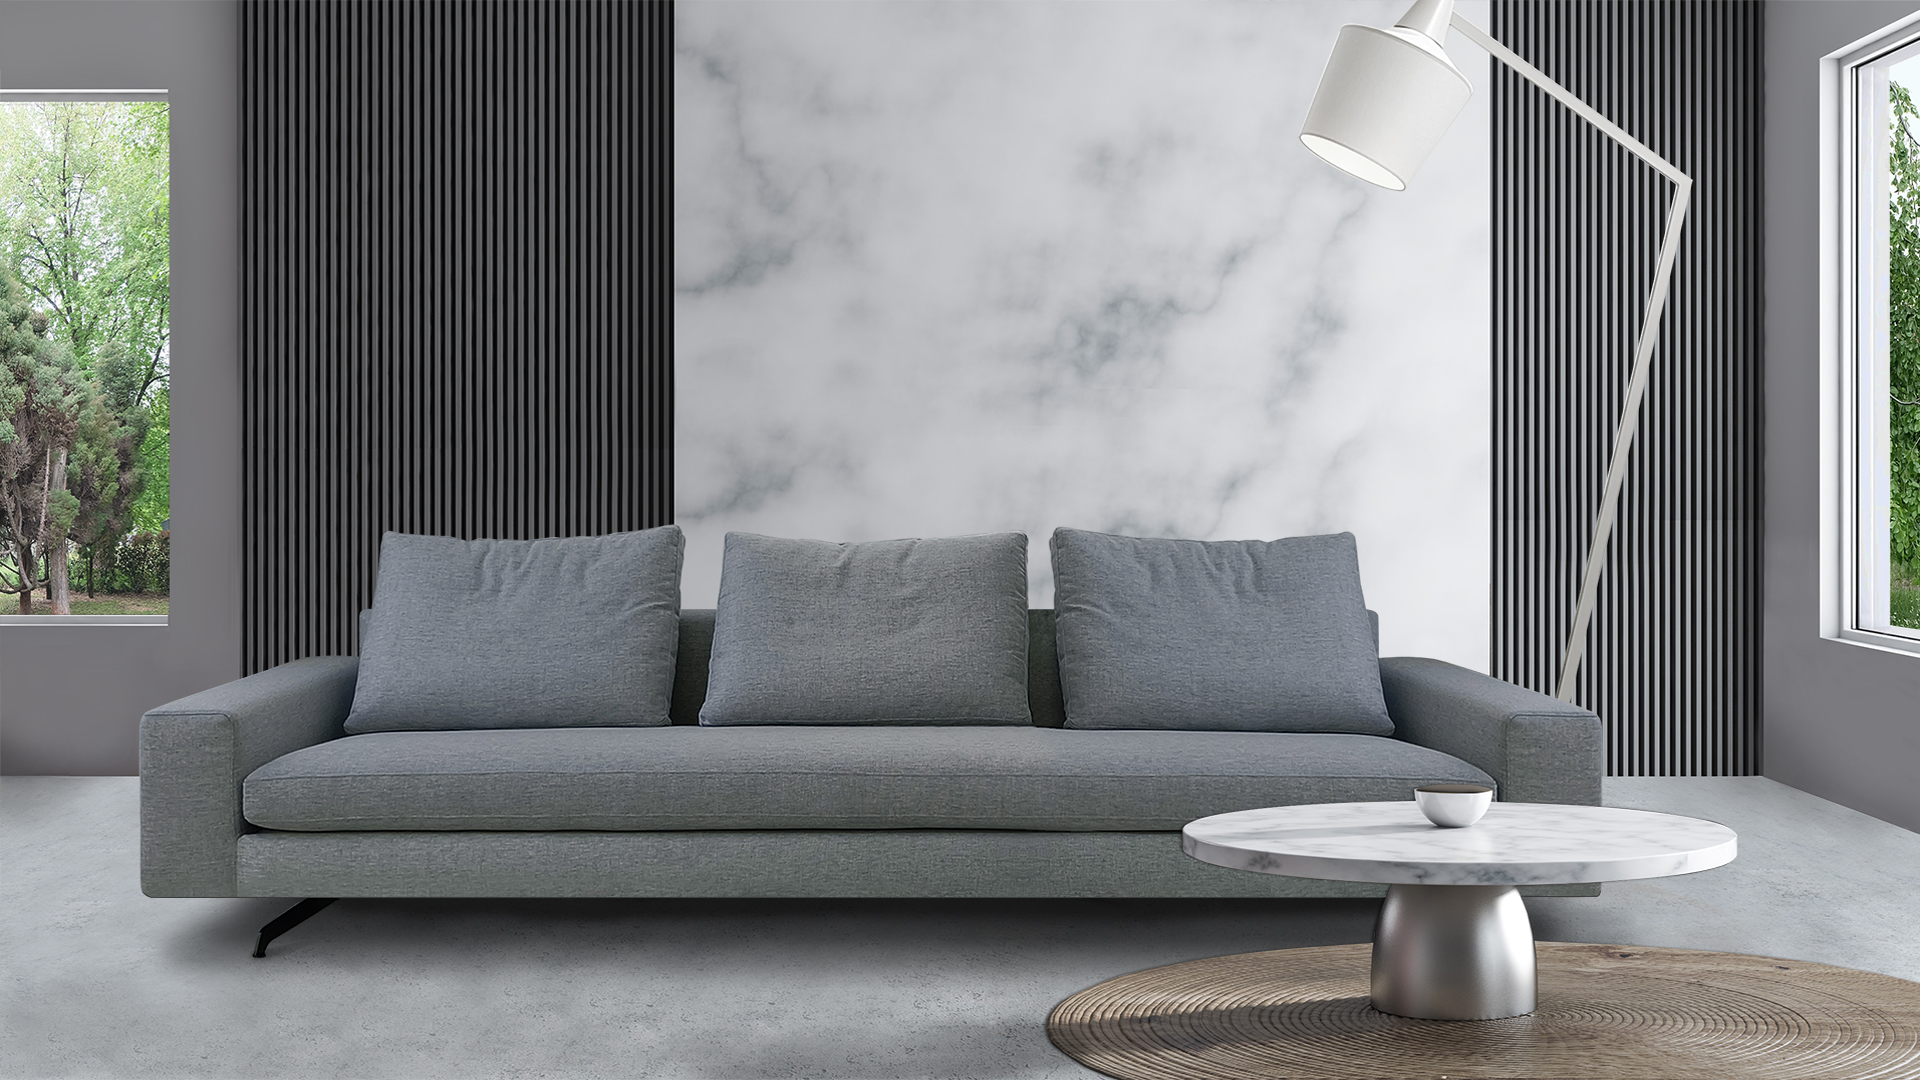 Interior of comfortable living room with gray and white marble walls, concrete floor and soft gray couch standing near white marble coffee table on carpet. 3d rendering